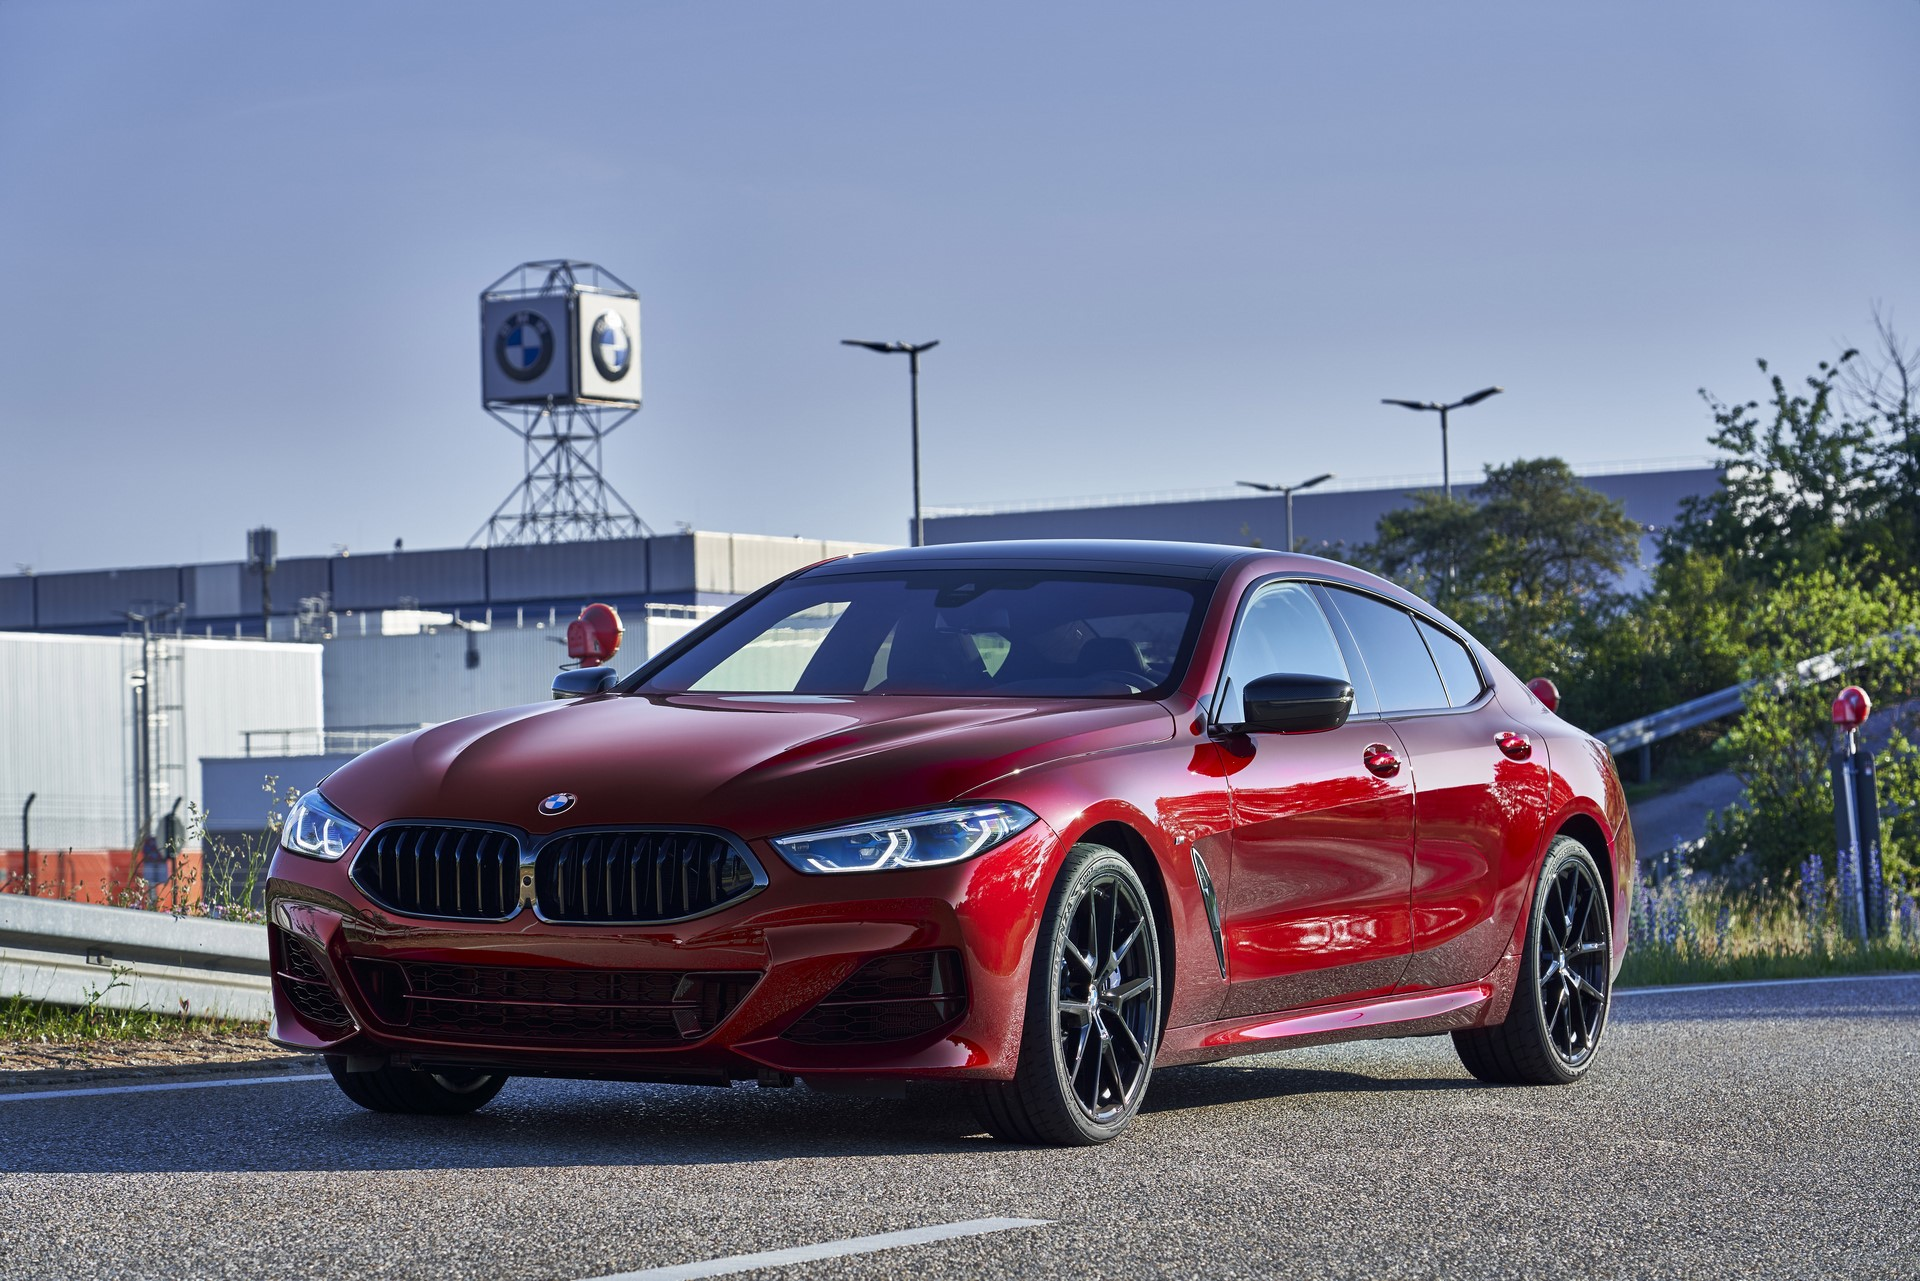 BMW-8-Series-Gran-Coupe-and-BMW-M8-Competition-Coupe-and-Convertible-production-starts-12